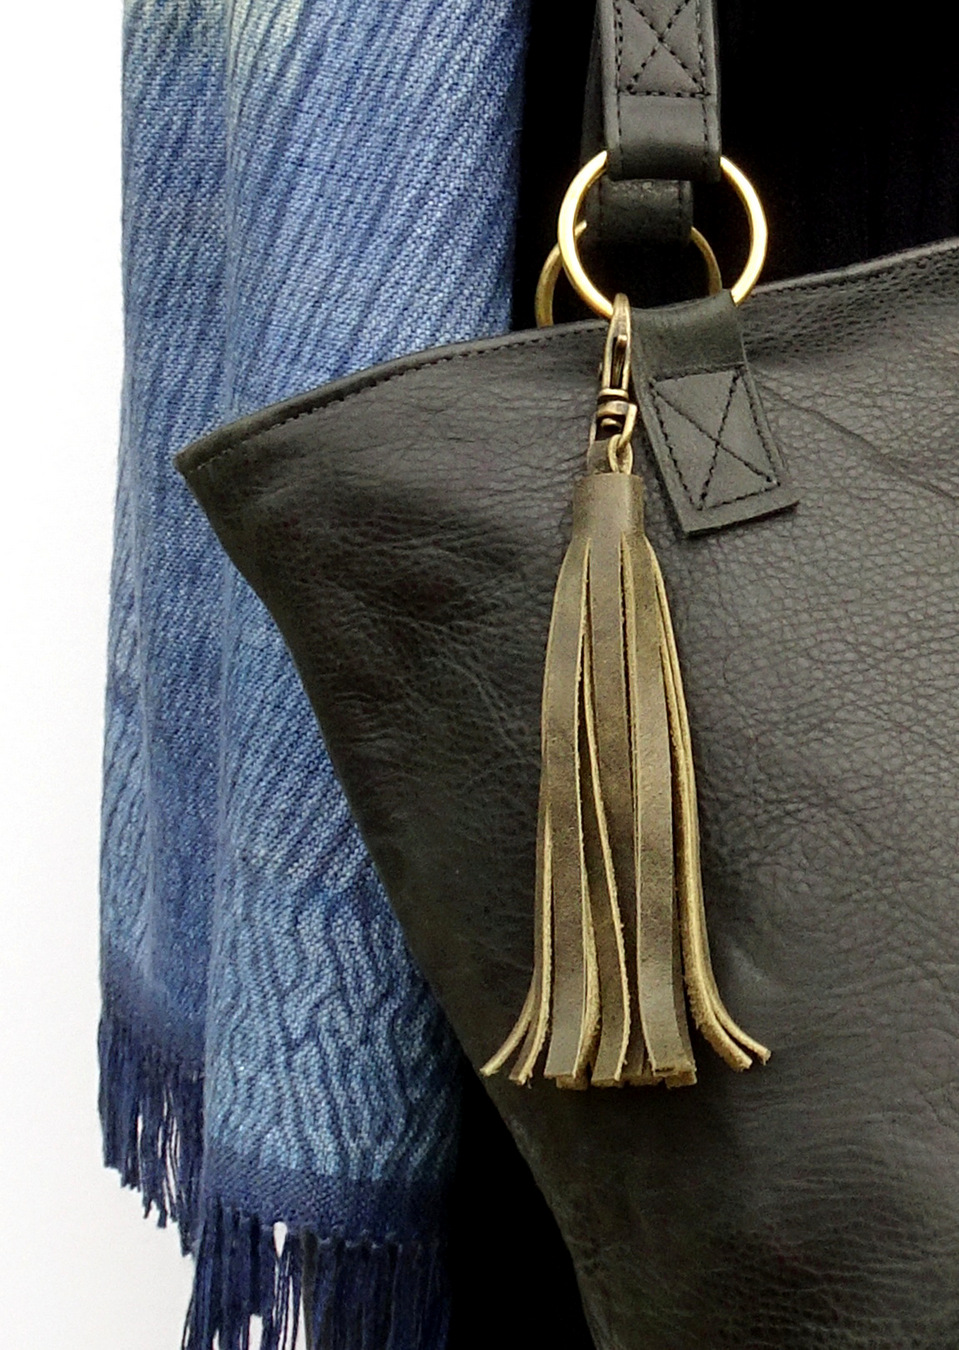 1-Handcrafted Leather Tassel Accessory, LaPlace Leather, TN-002.JPG